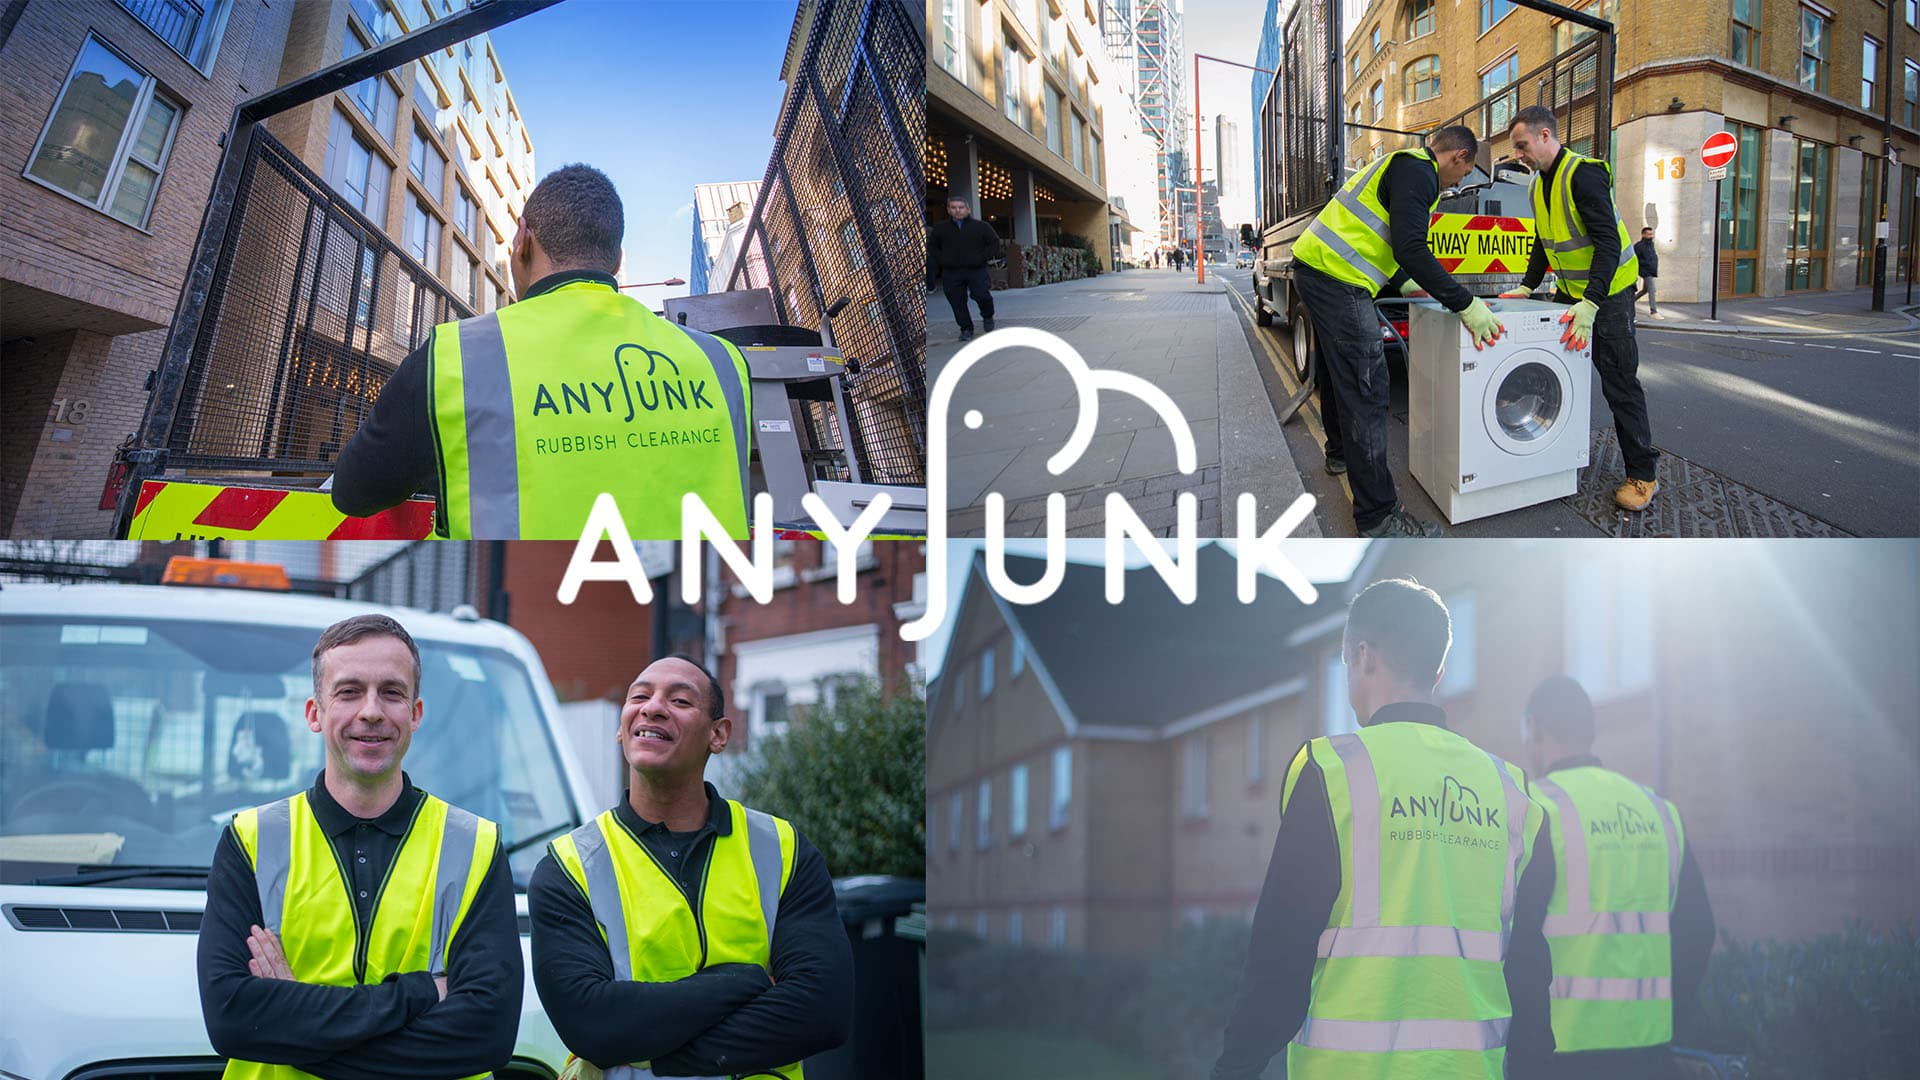 Photoshoot for Anyjunk